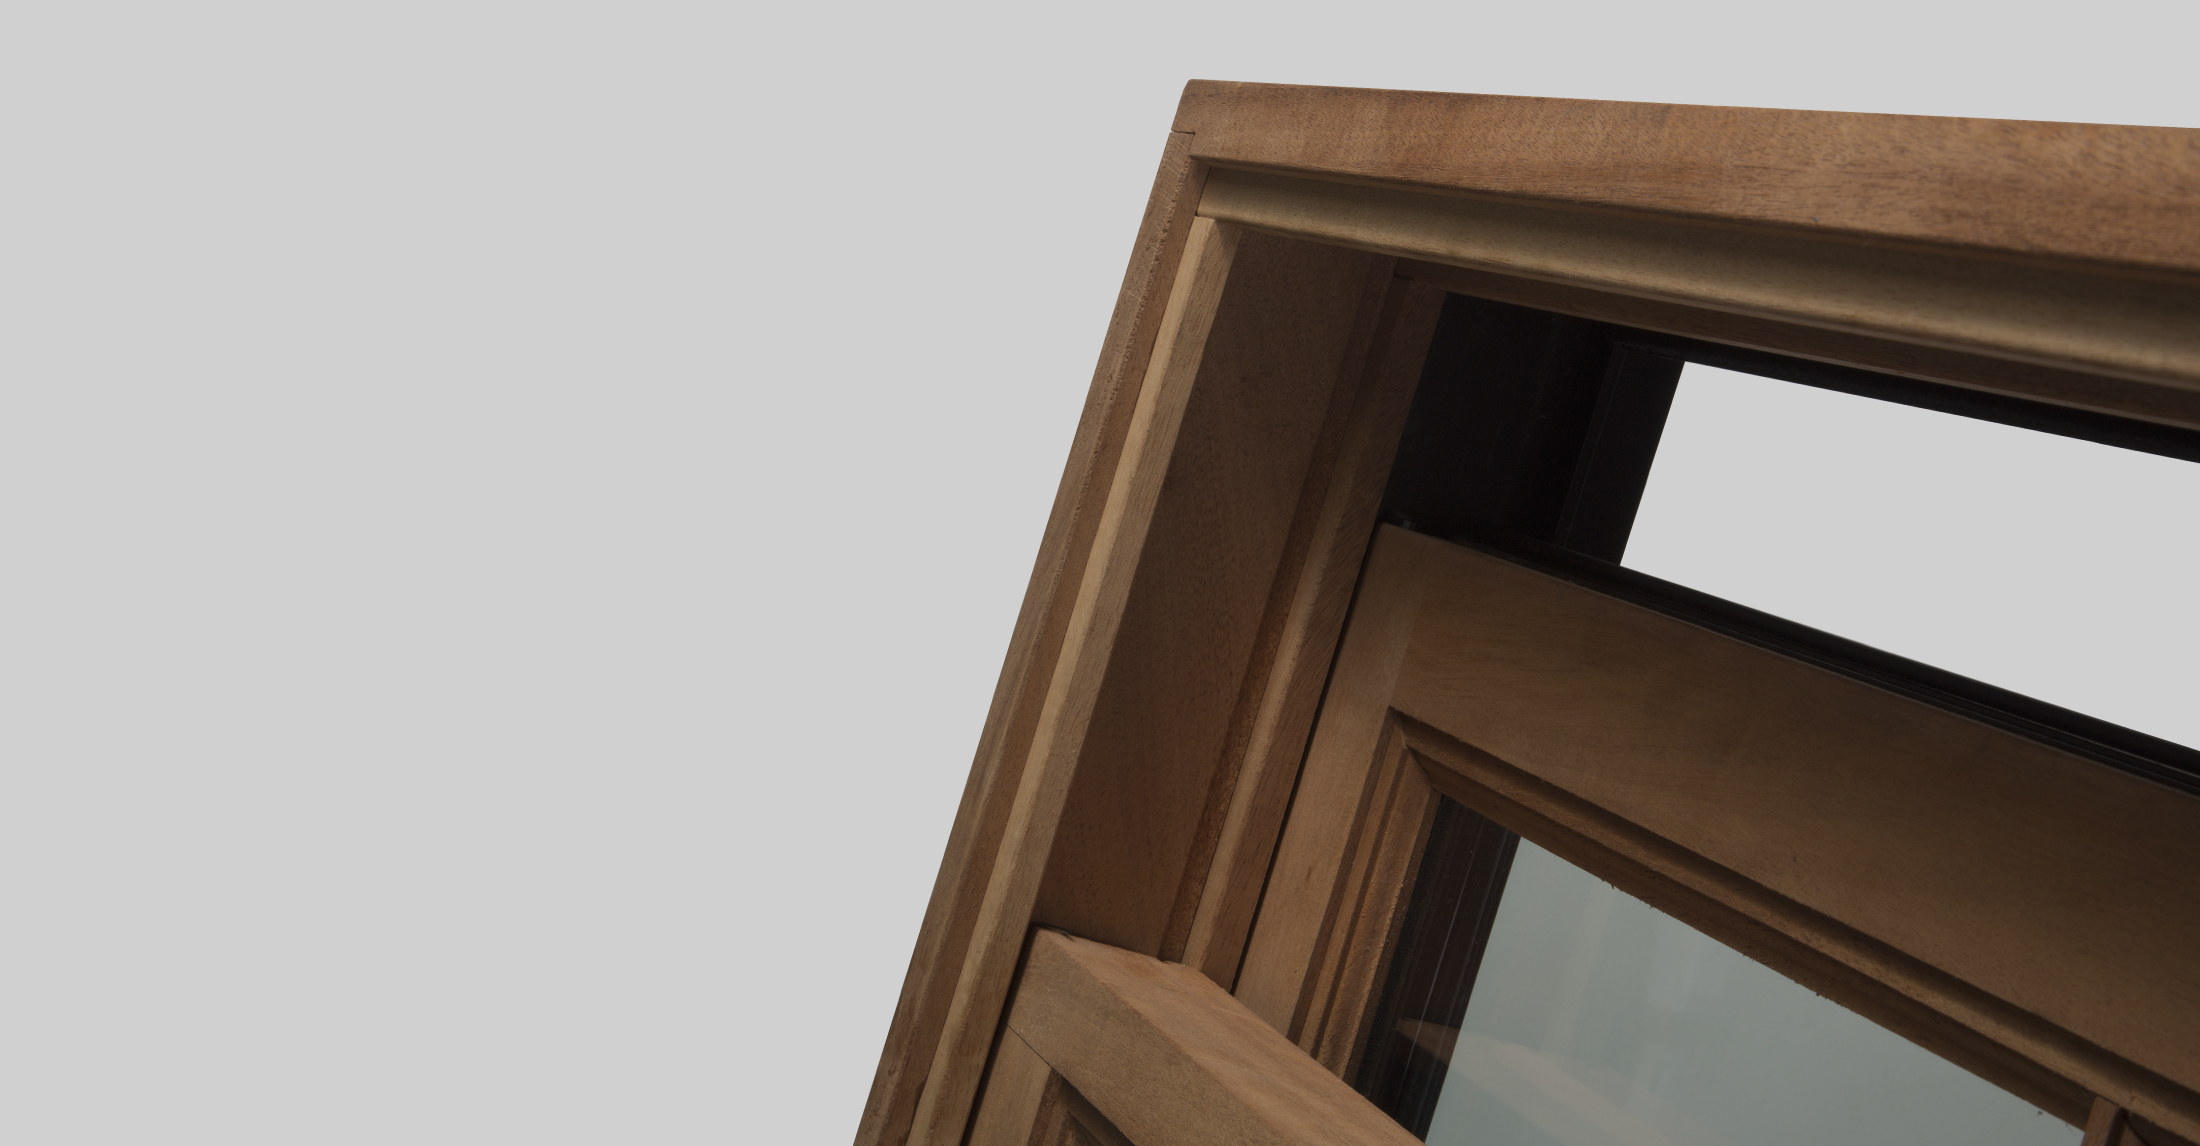 Double Hung Window Detail